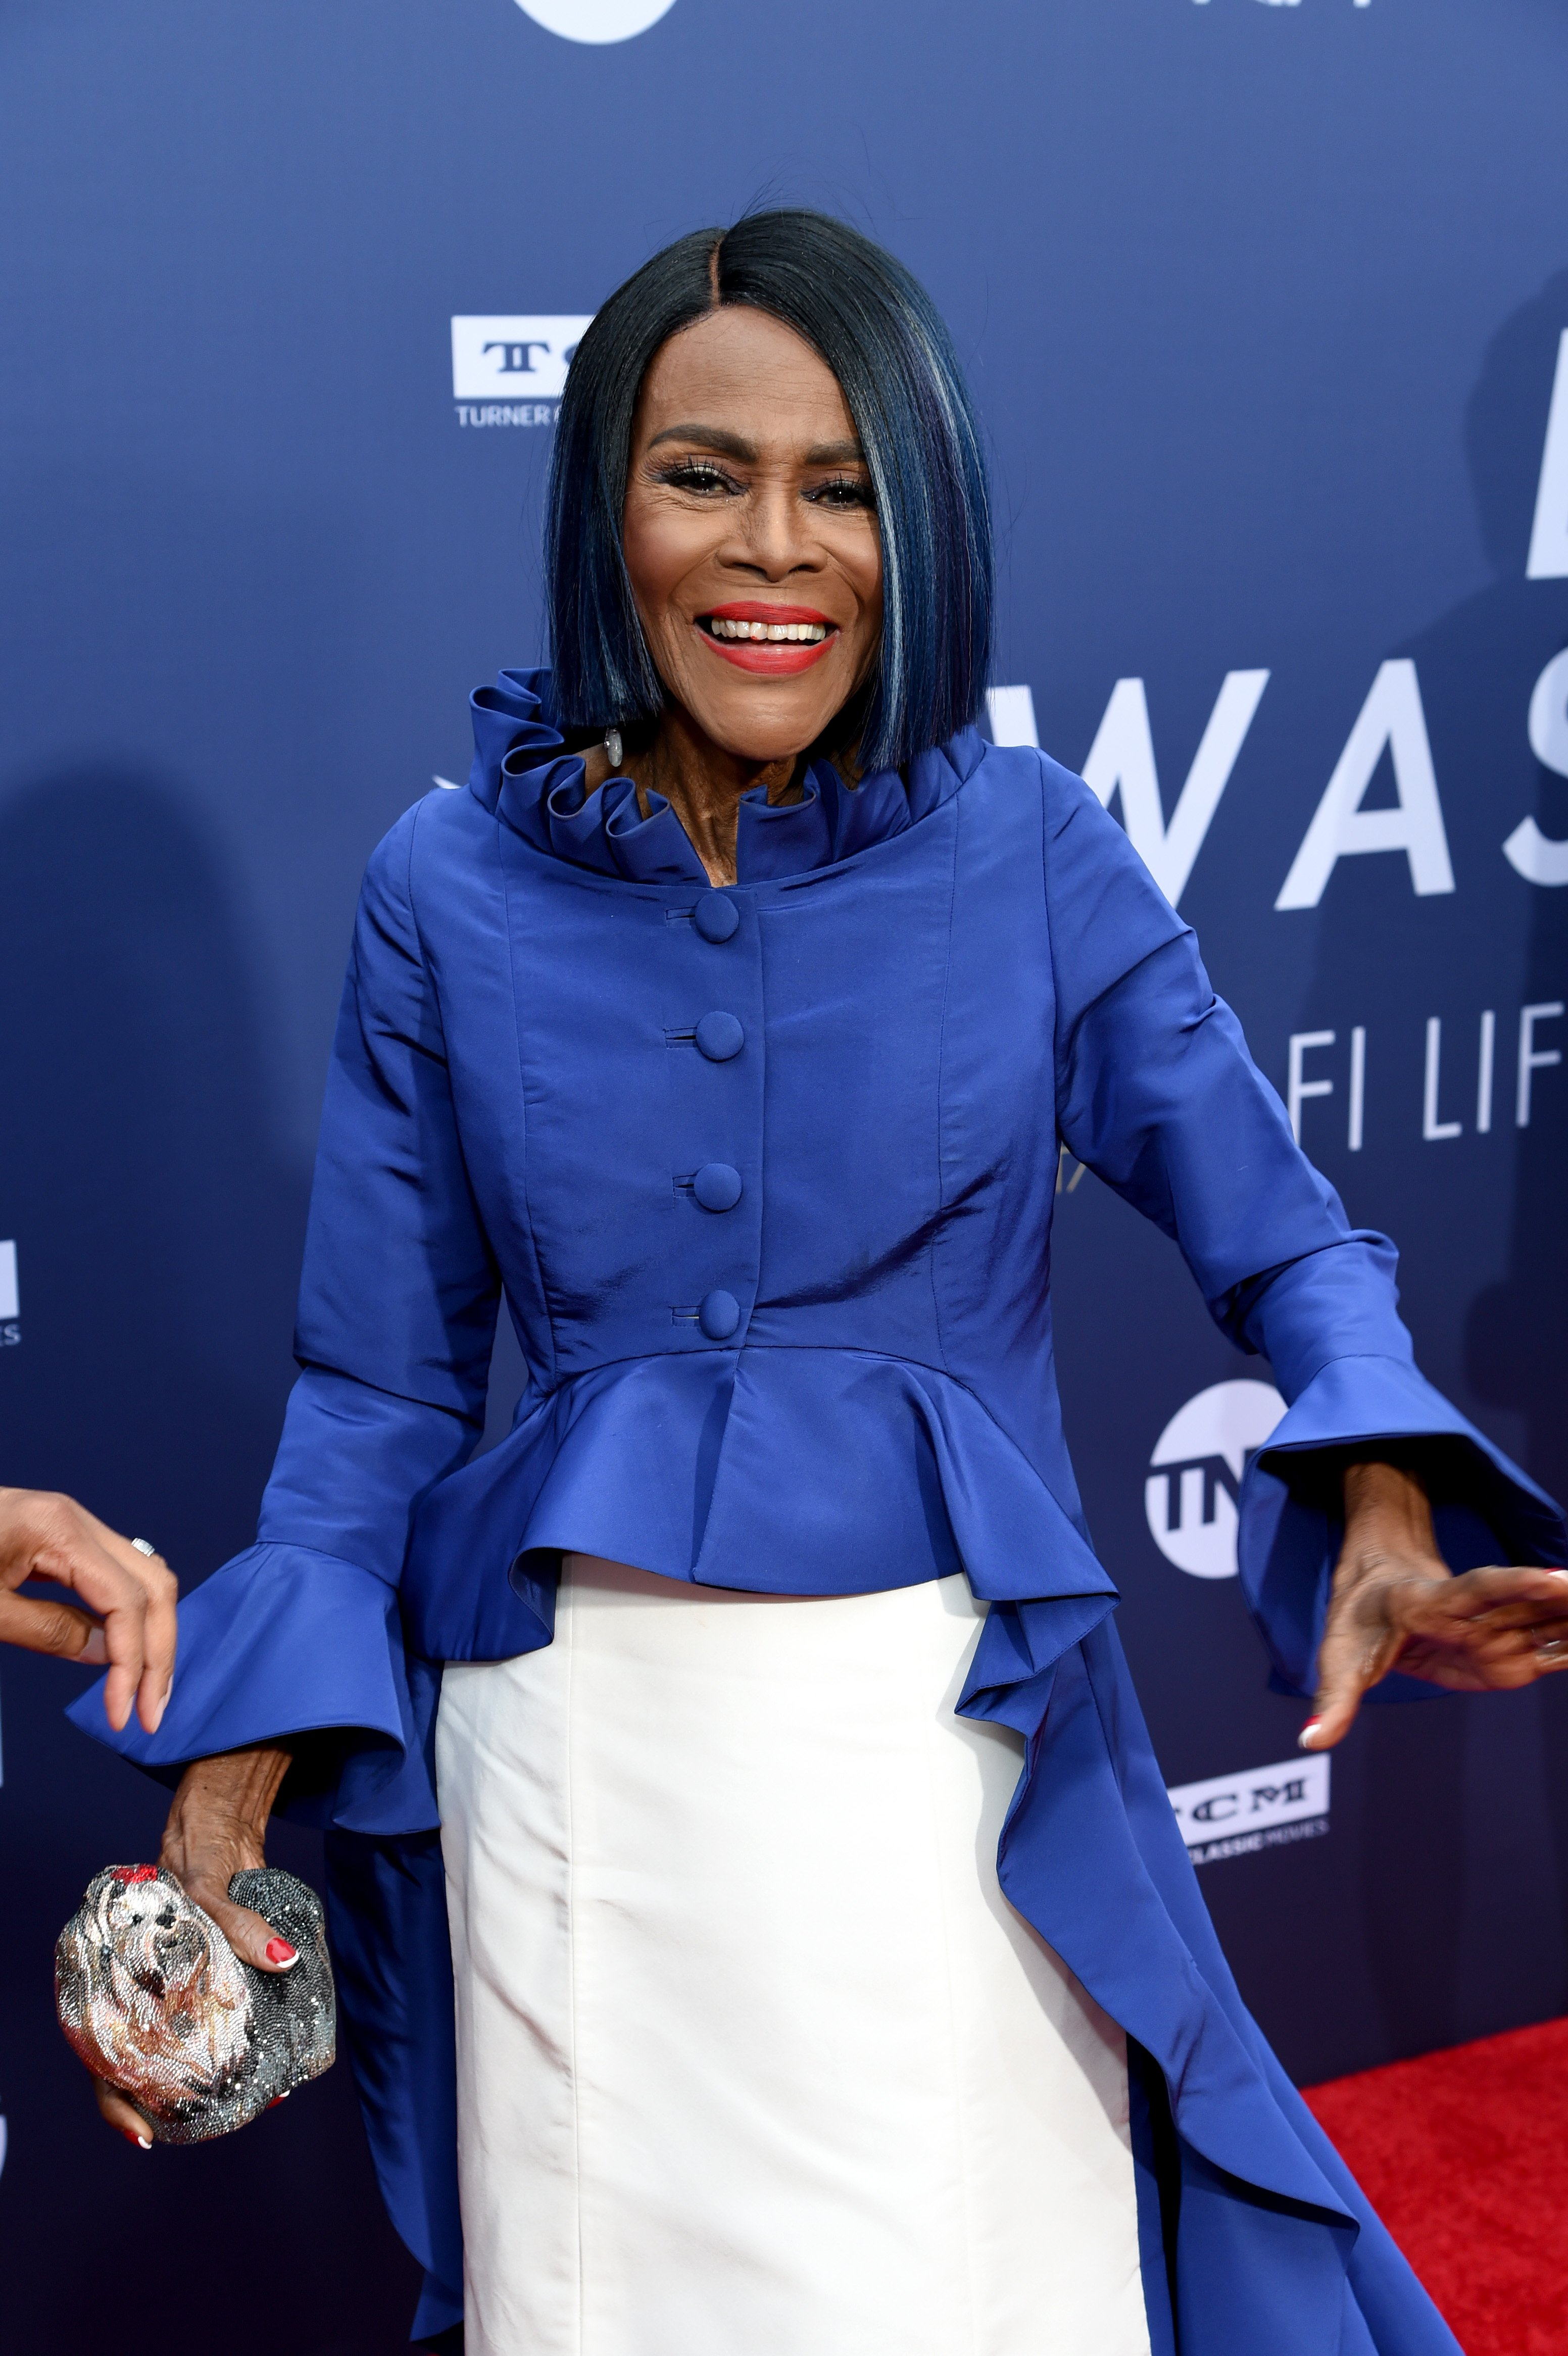 Cicely Tyson at the 47th AFI Life Achievement Awards honoring Denzel Washington at Dolby Theatre on June 06, 2019 in Hollywood, California.|Source: Getty Images